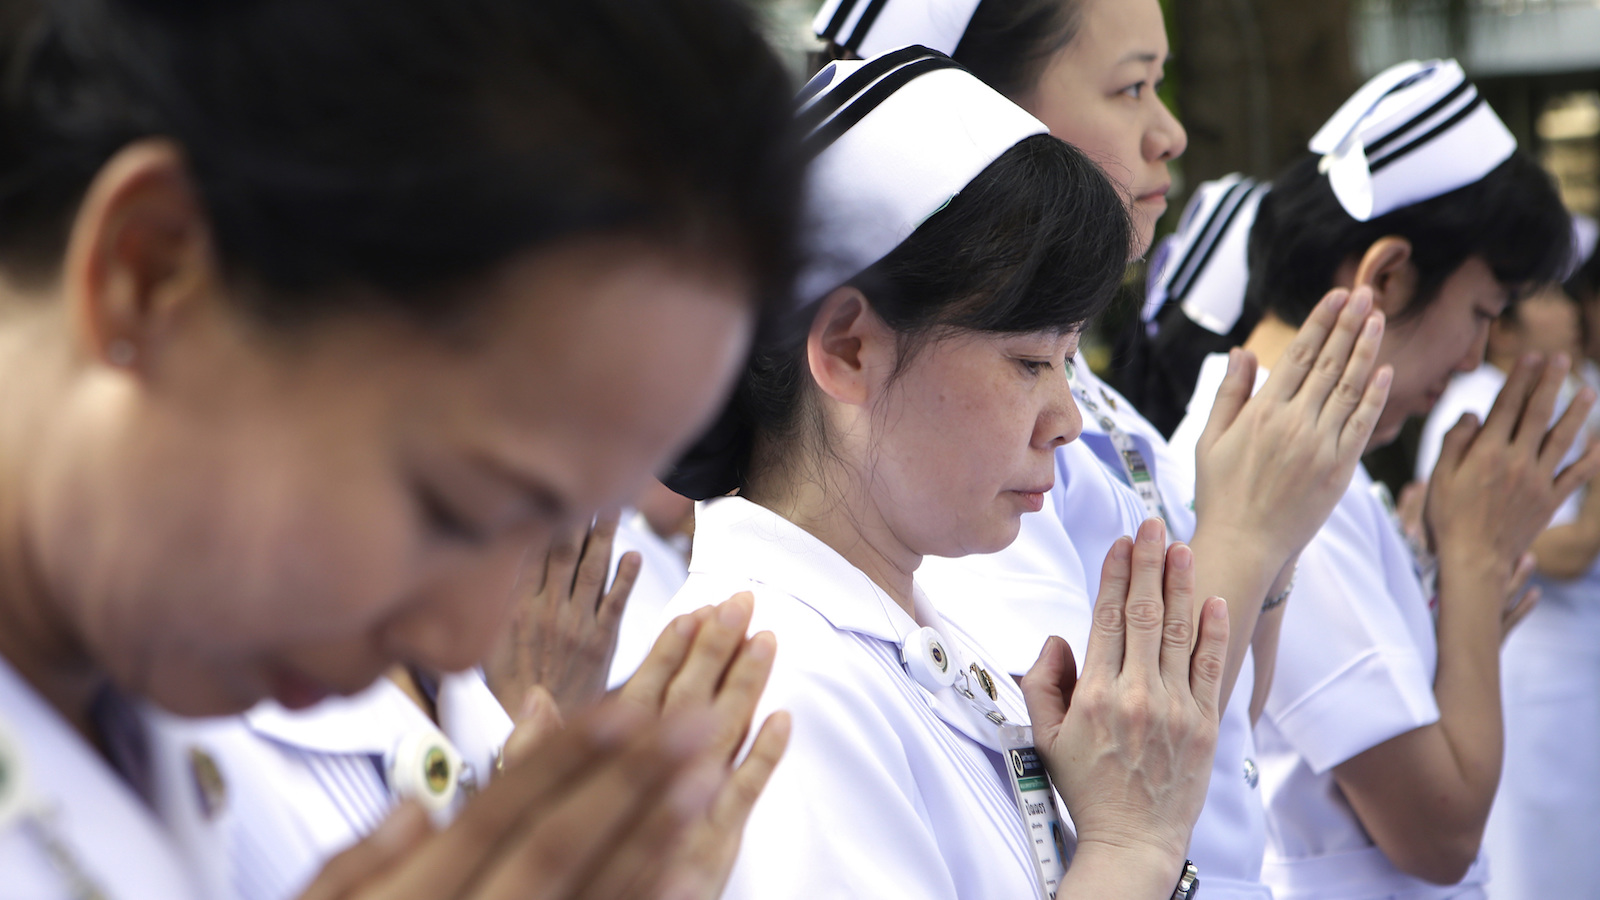 Mourners nurses pray before stand silent memorial service at Siriraj Hospital for one week anniversary the late Thai King Bhumibol Adulyadej in Bangkok, Thailand, Thursday, Oct. 20, 2016. King Bhumibol died last Thursday at age 88. (AP Photo/Sakchai Lalit)